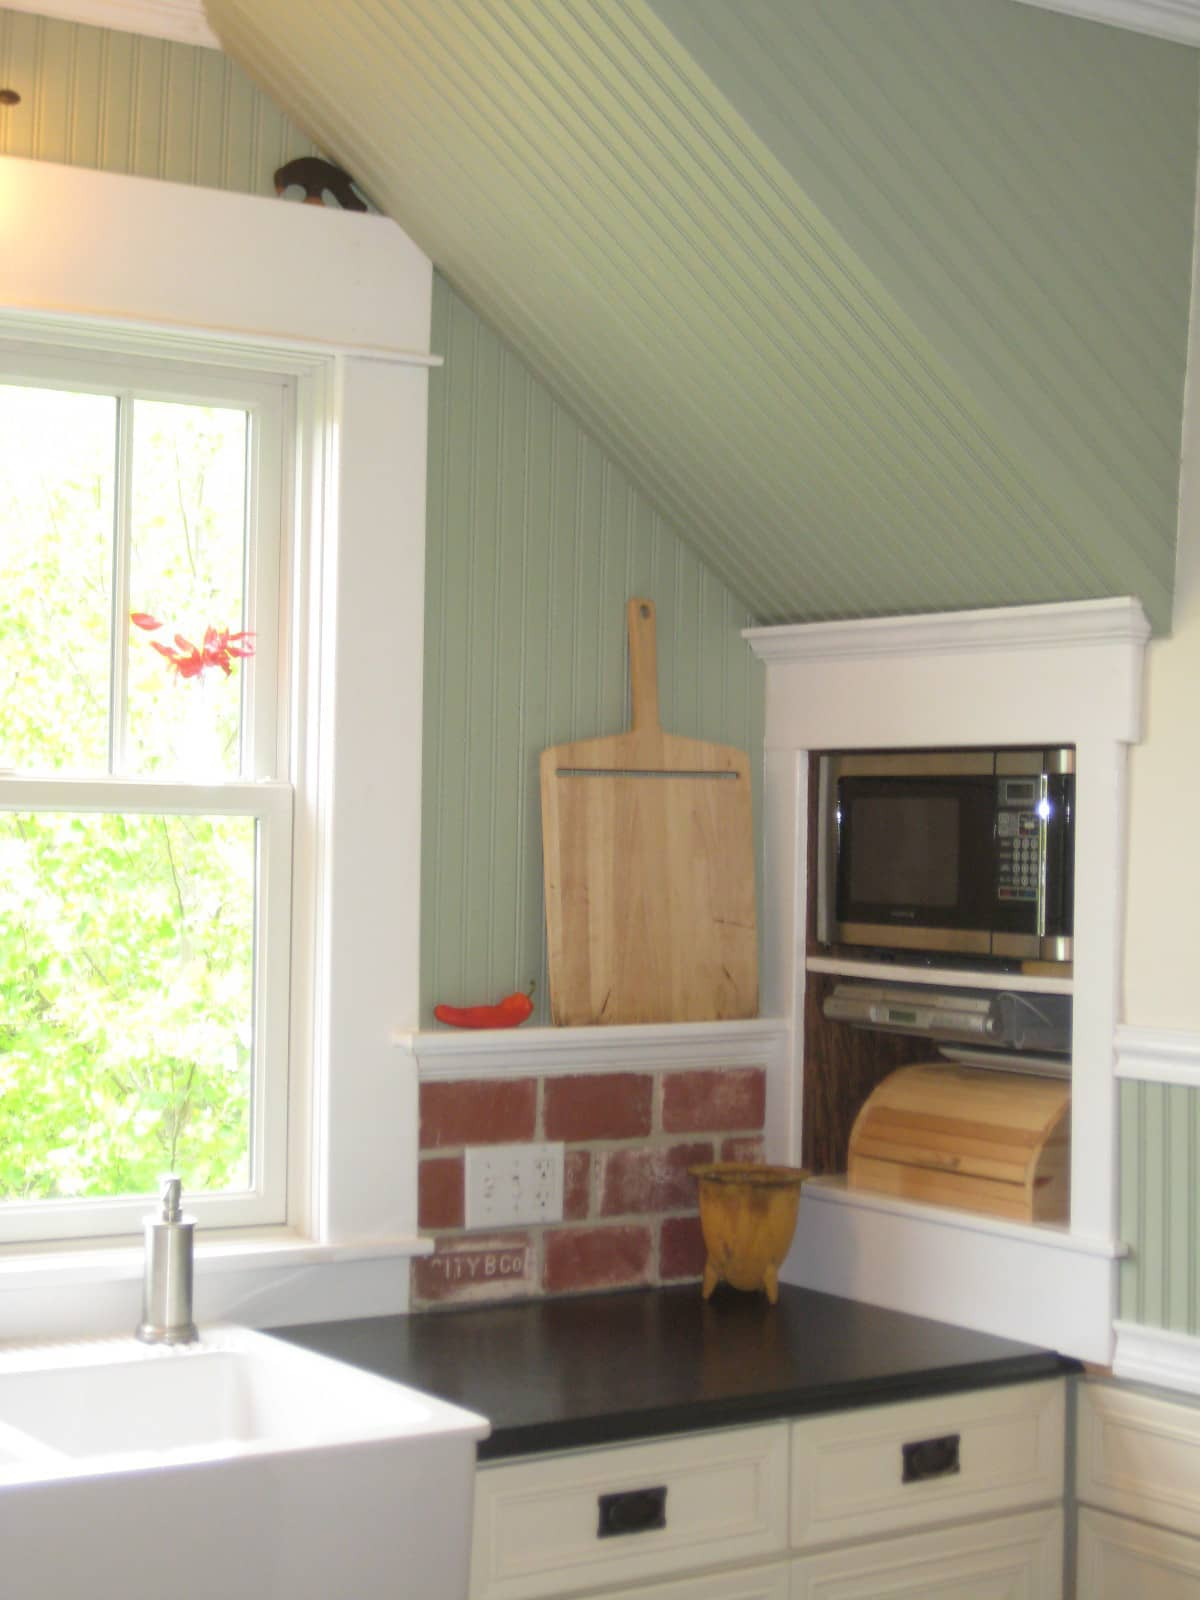 Joi's Cleverly Renovated Virginia Kitchen: gallery image 5